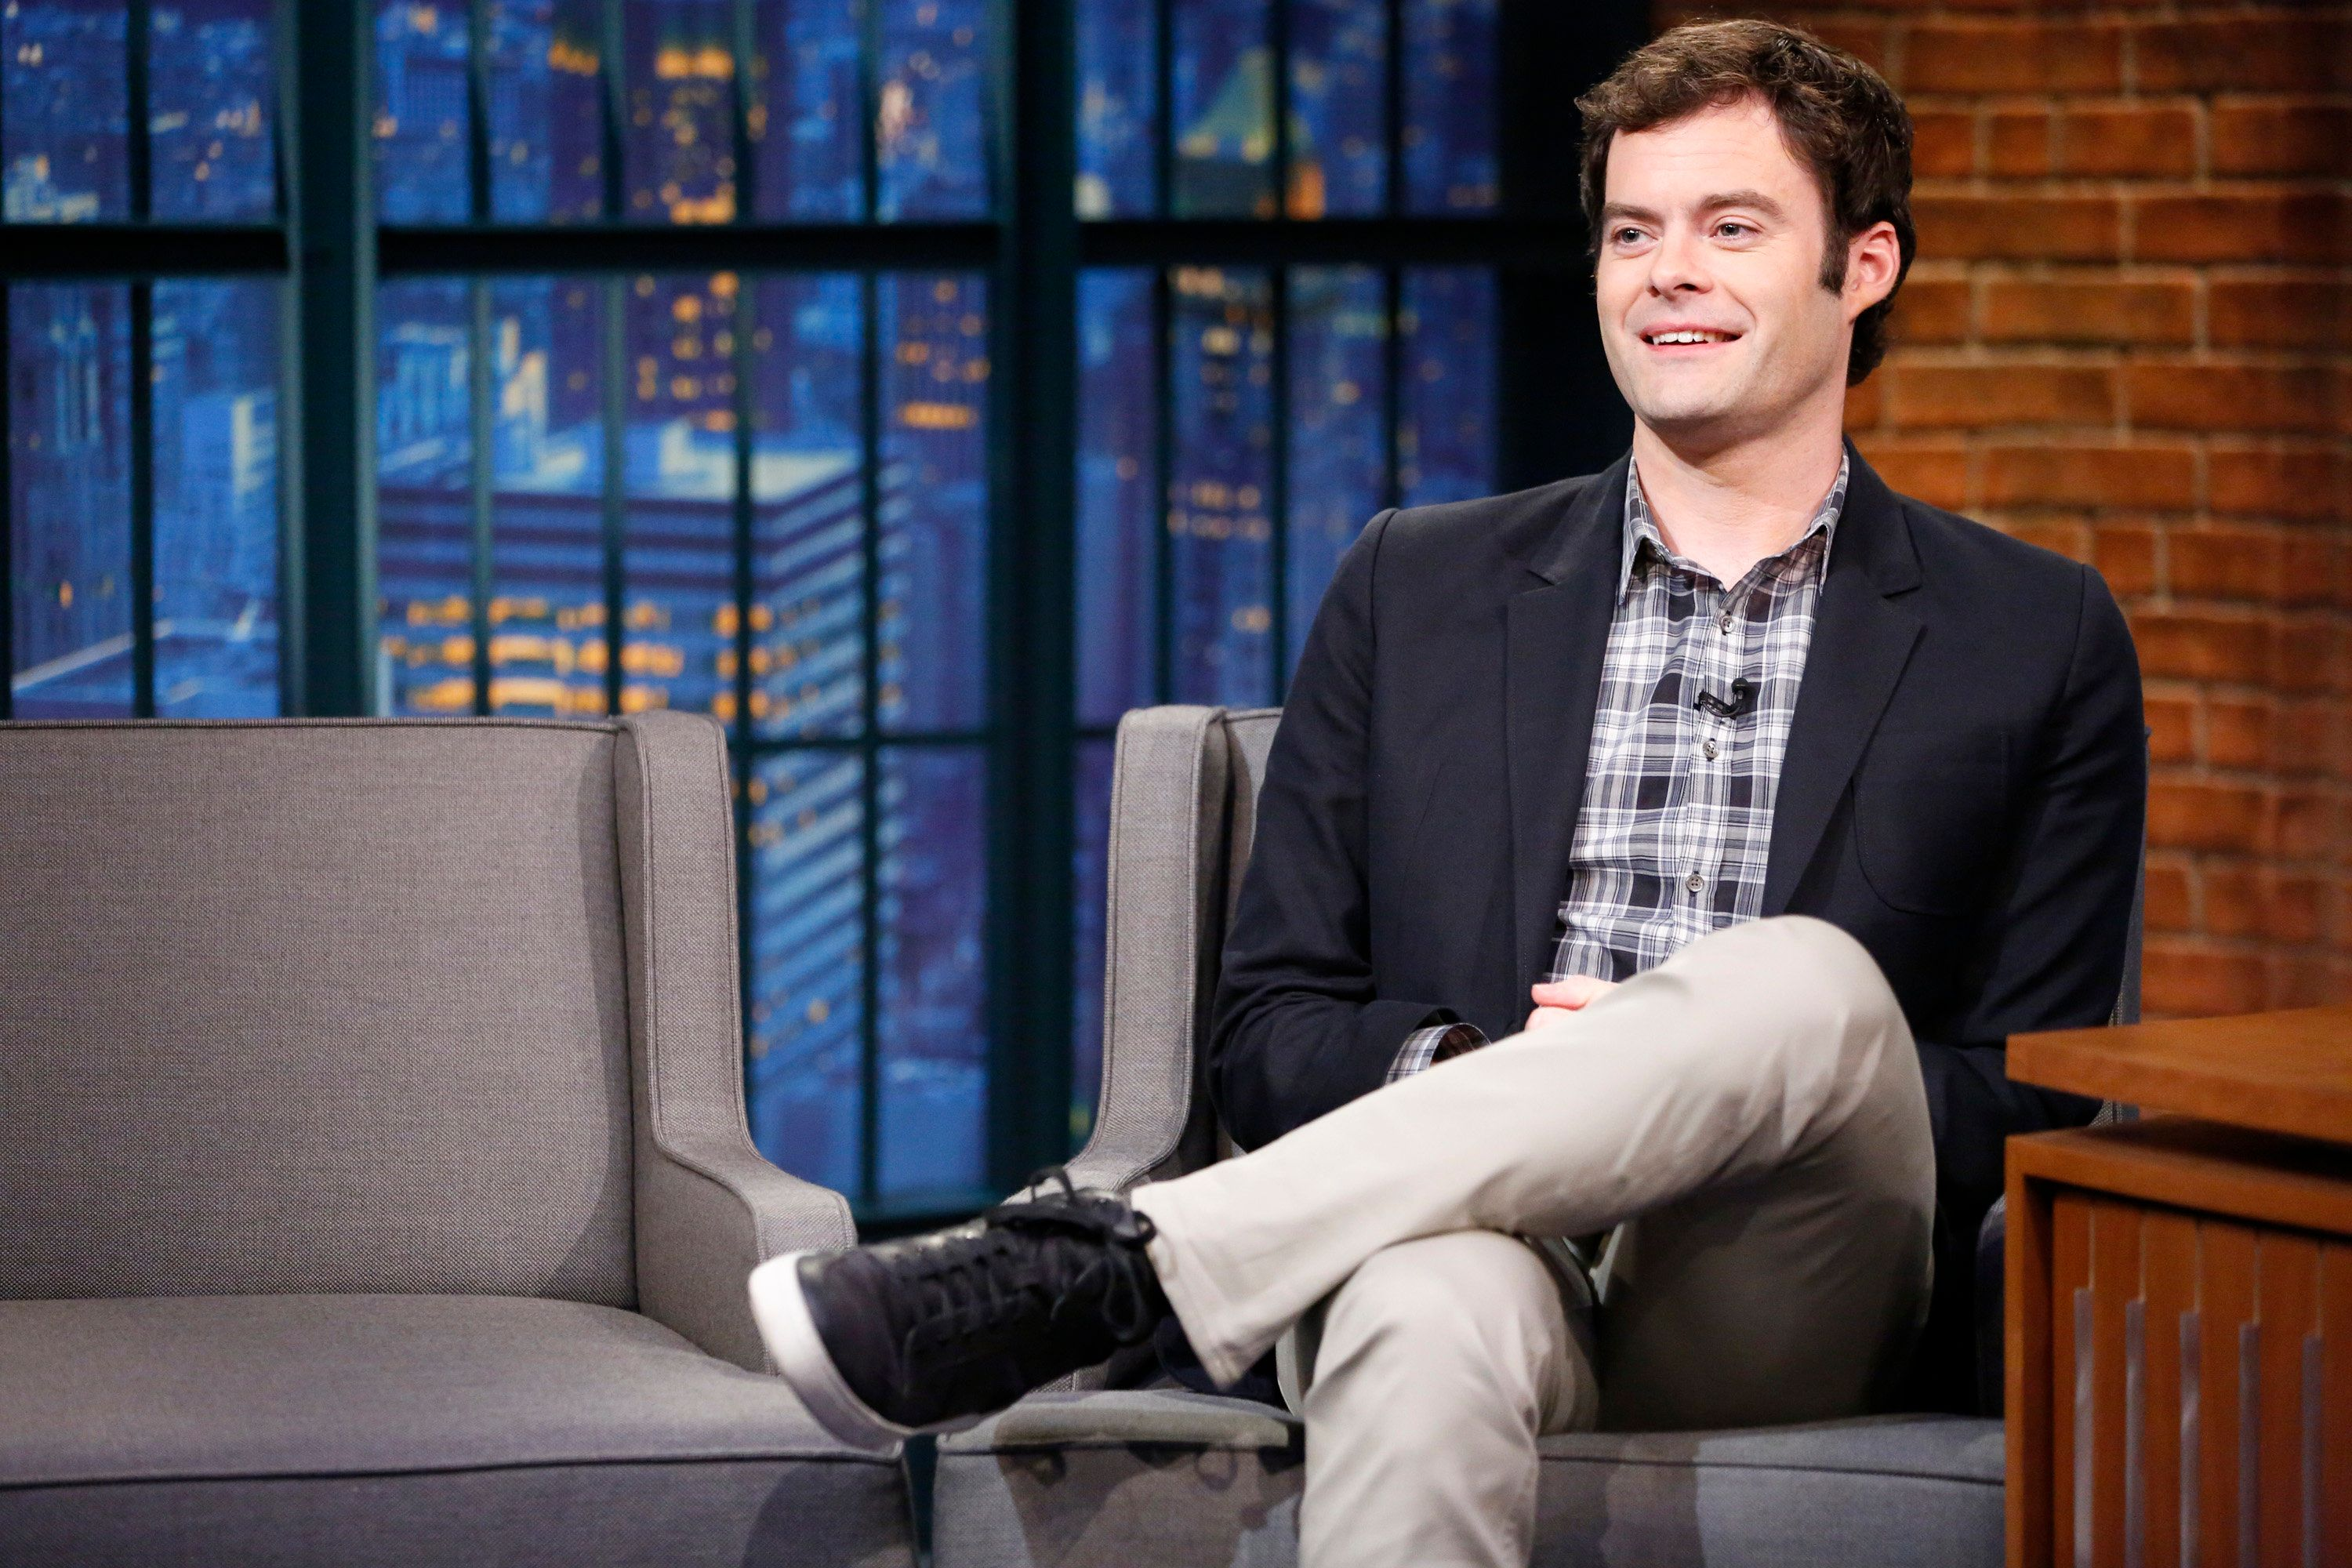 LATE NIGHT WITH SETH MEYERS -- Episode 248 -- Pictured: Actor Bill Hader during an interview on August 17, 2015 -- (Photo by: Lloyd Bishop/NBC/NBCU Photo Bank via Getty Images)